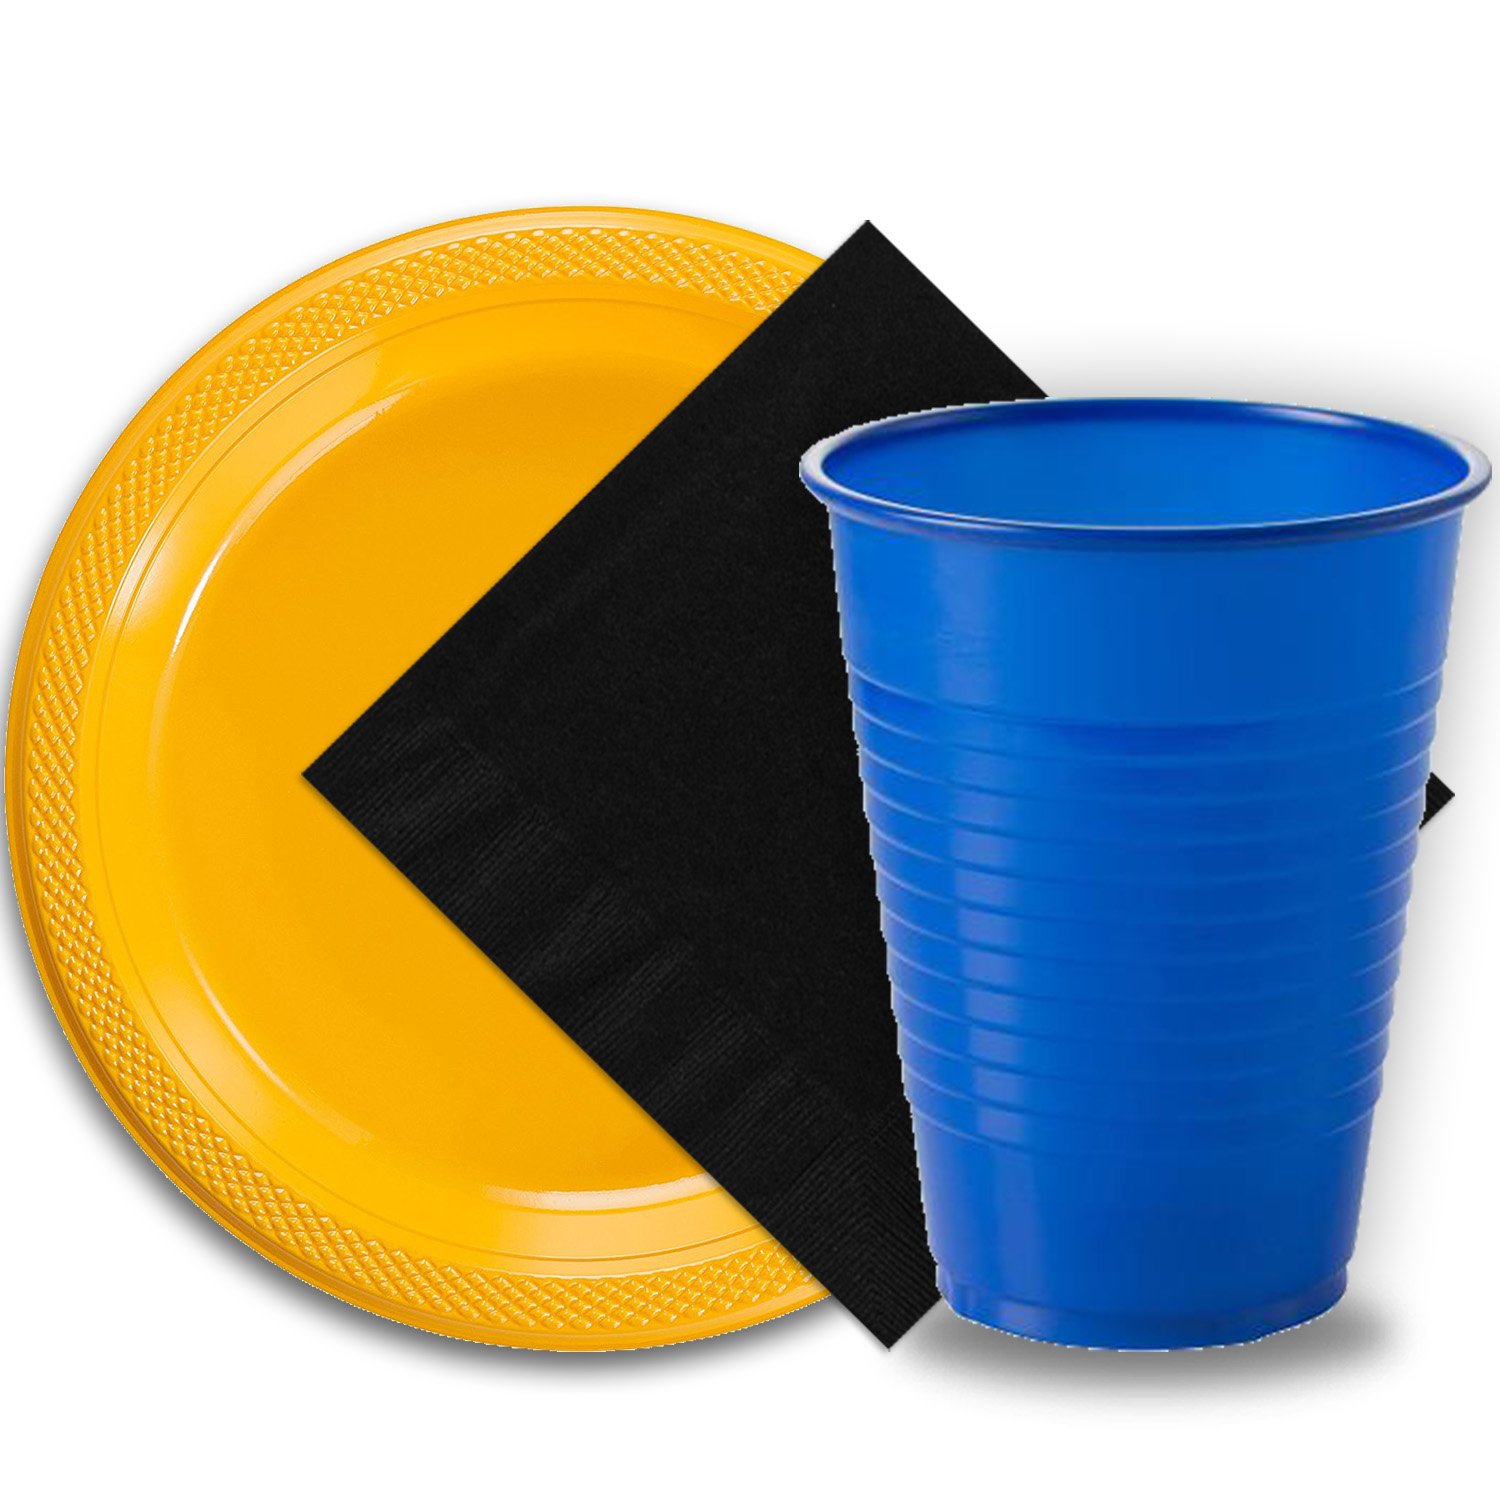 "50 Yellow Plastic Plates (9""), 50 Dark Blue Plastic Cups (12 oz.), and 50 Black Paper Napkins, Dazzelling Colored Disposable Party Supplies Tableware Set for Fifty Guests."